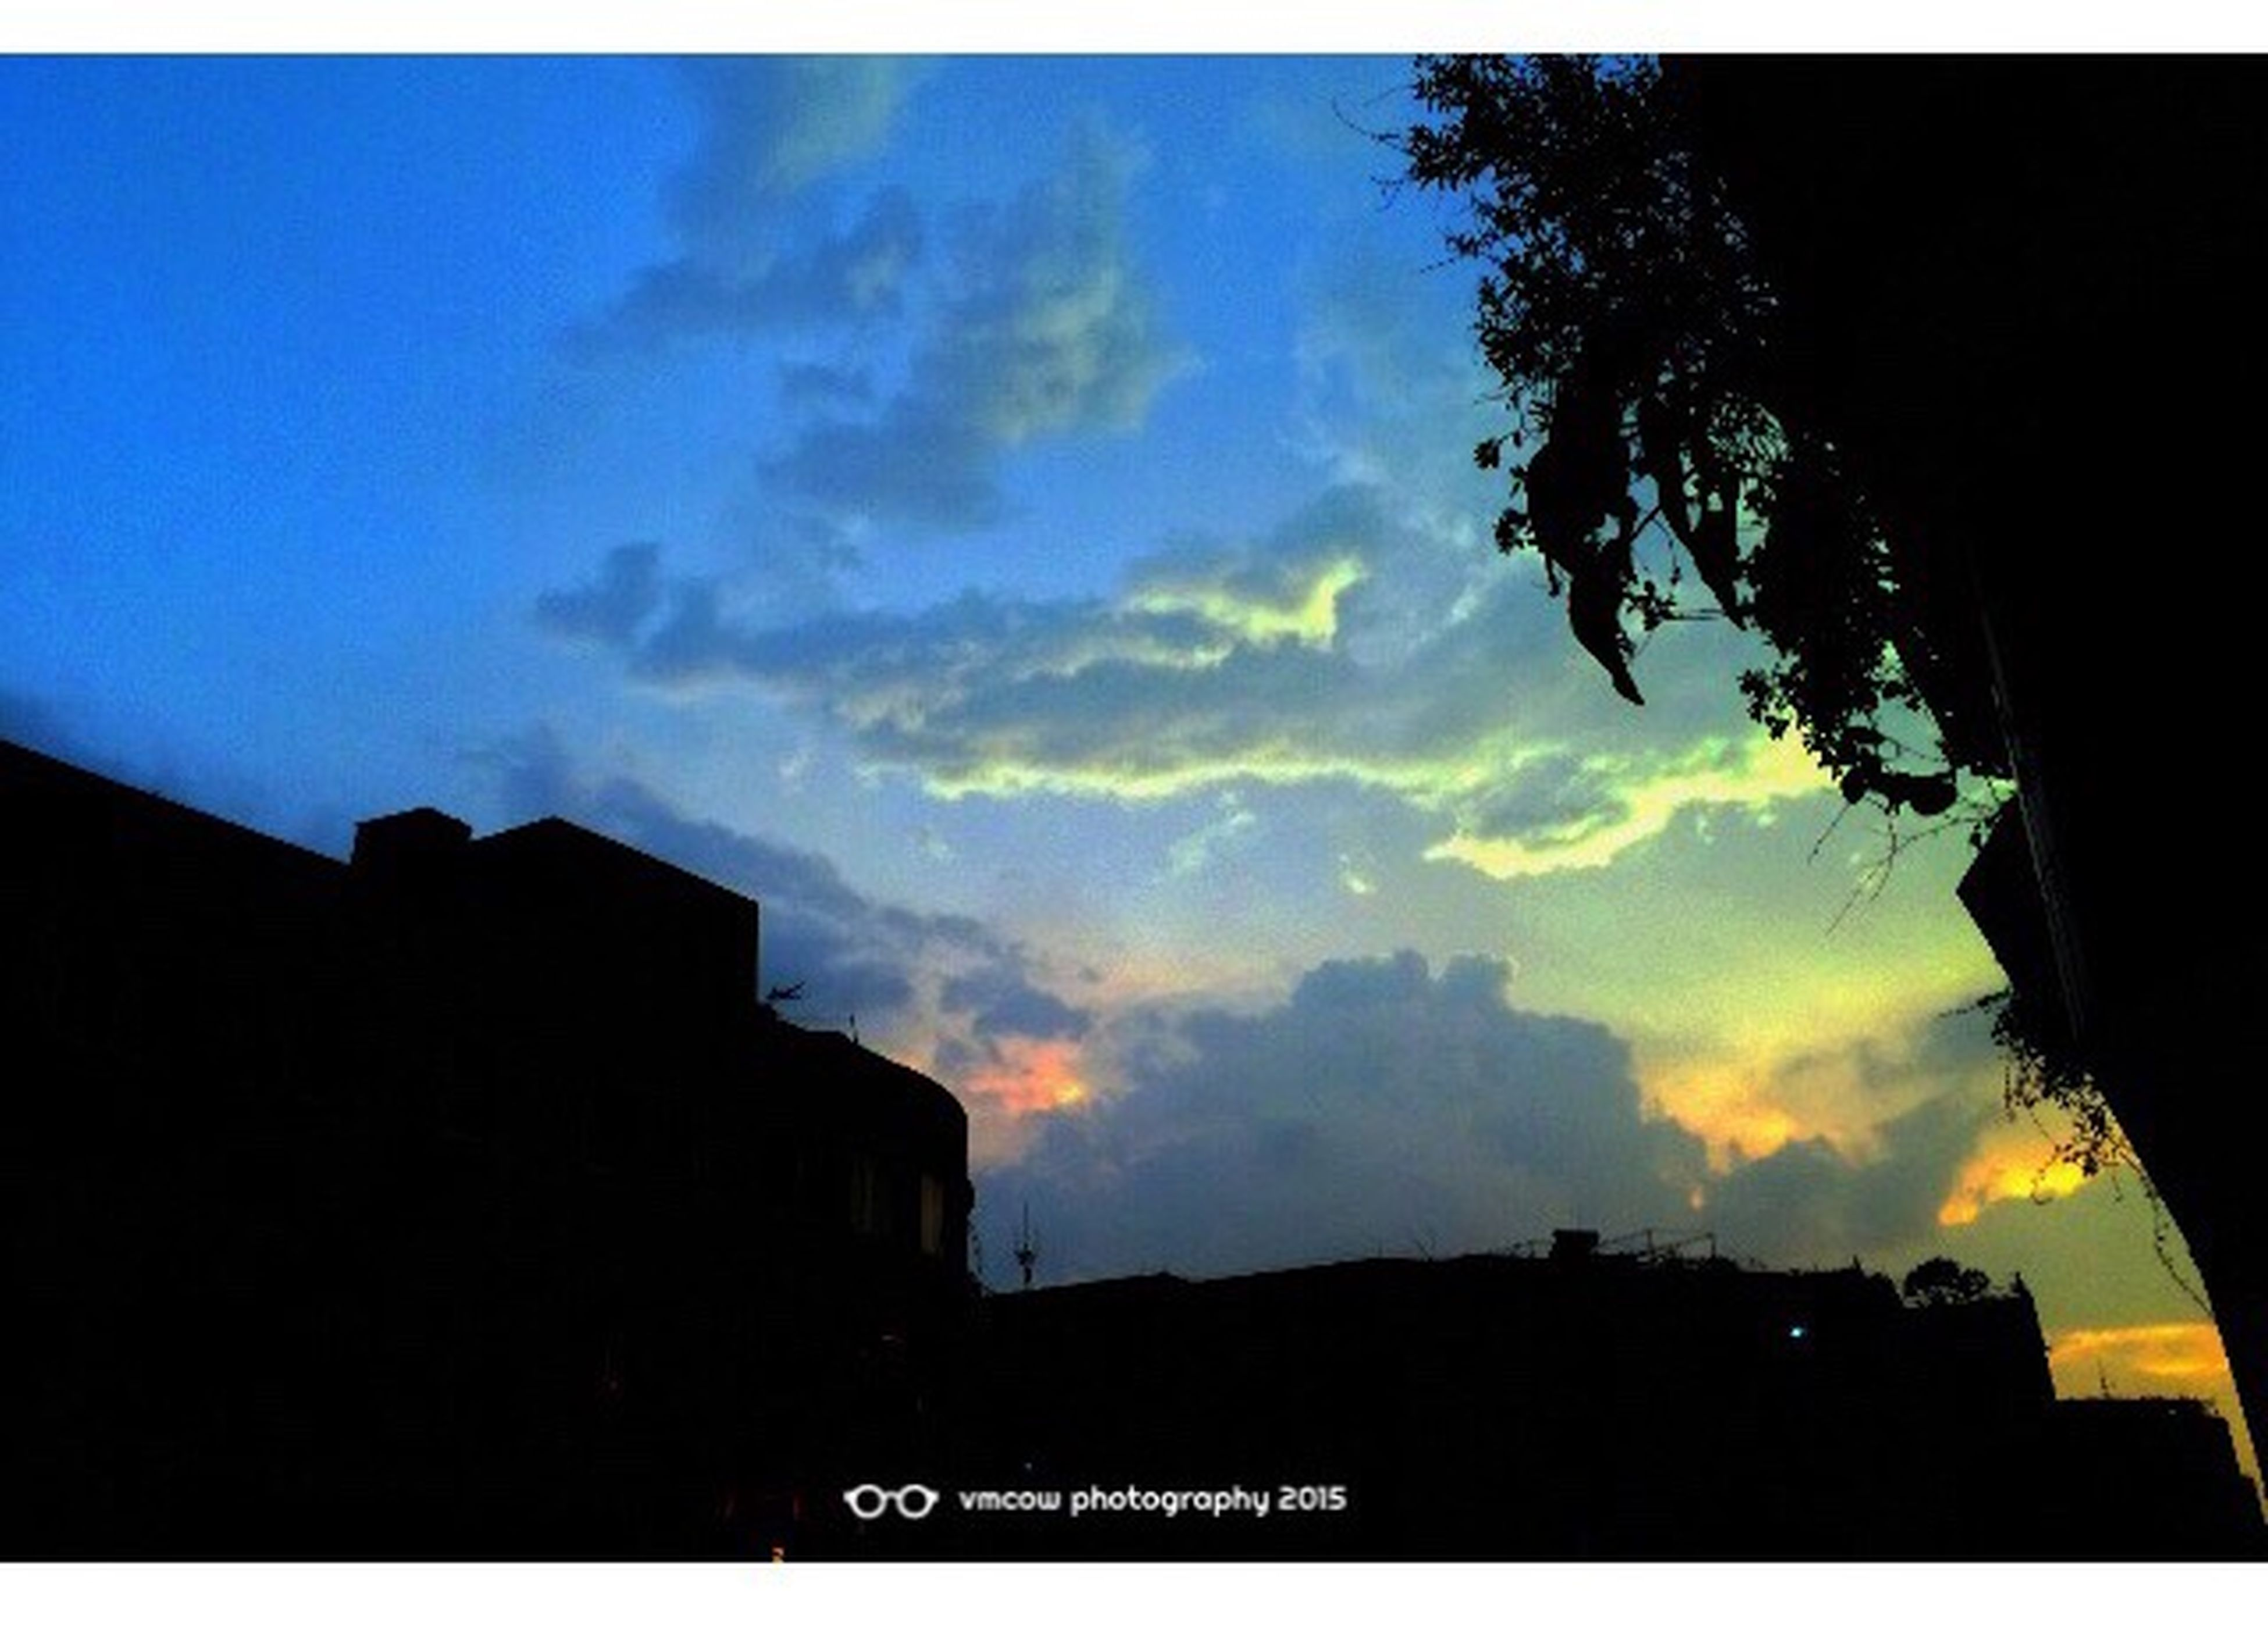 silhouette, sky, building exterior, low angle view, sunset, cloud - sky, built structure, tree, architecture, cloud, dusk, outdoors, nature, text, beauty in nature, communication, no people, cloudy, city, scenics